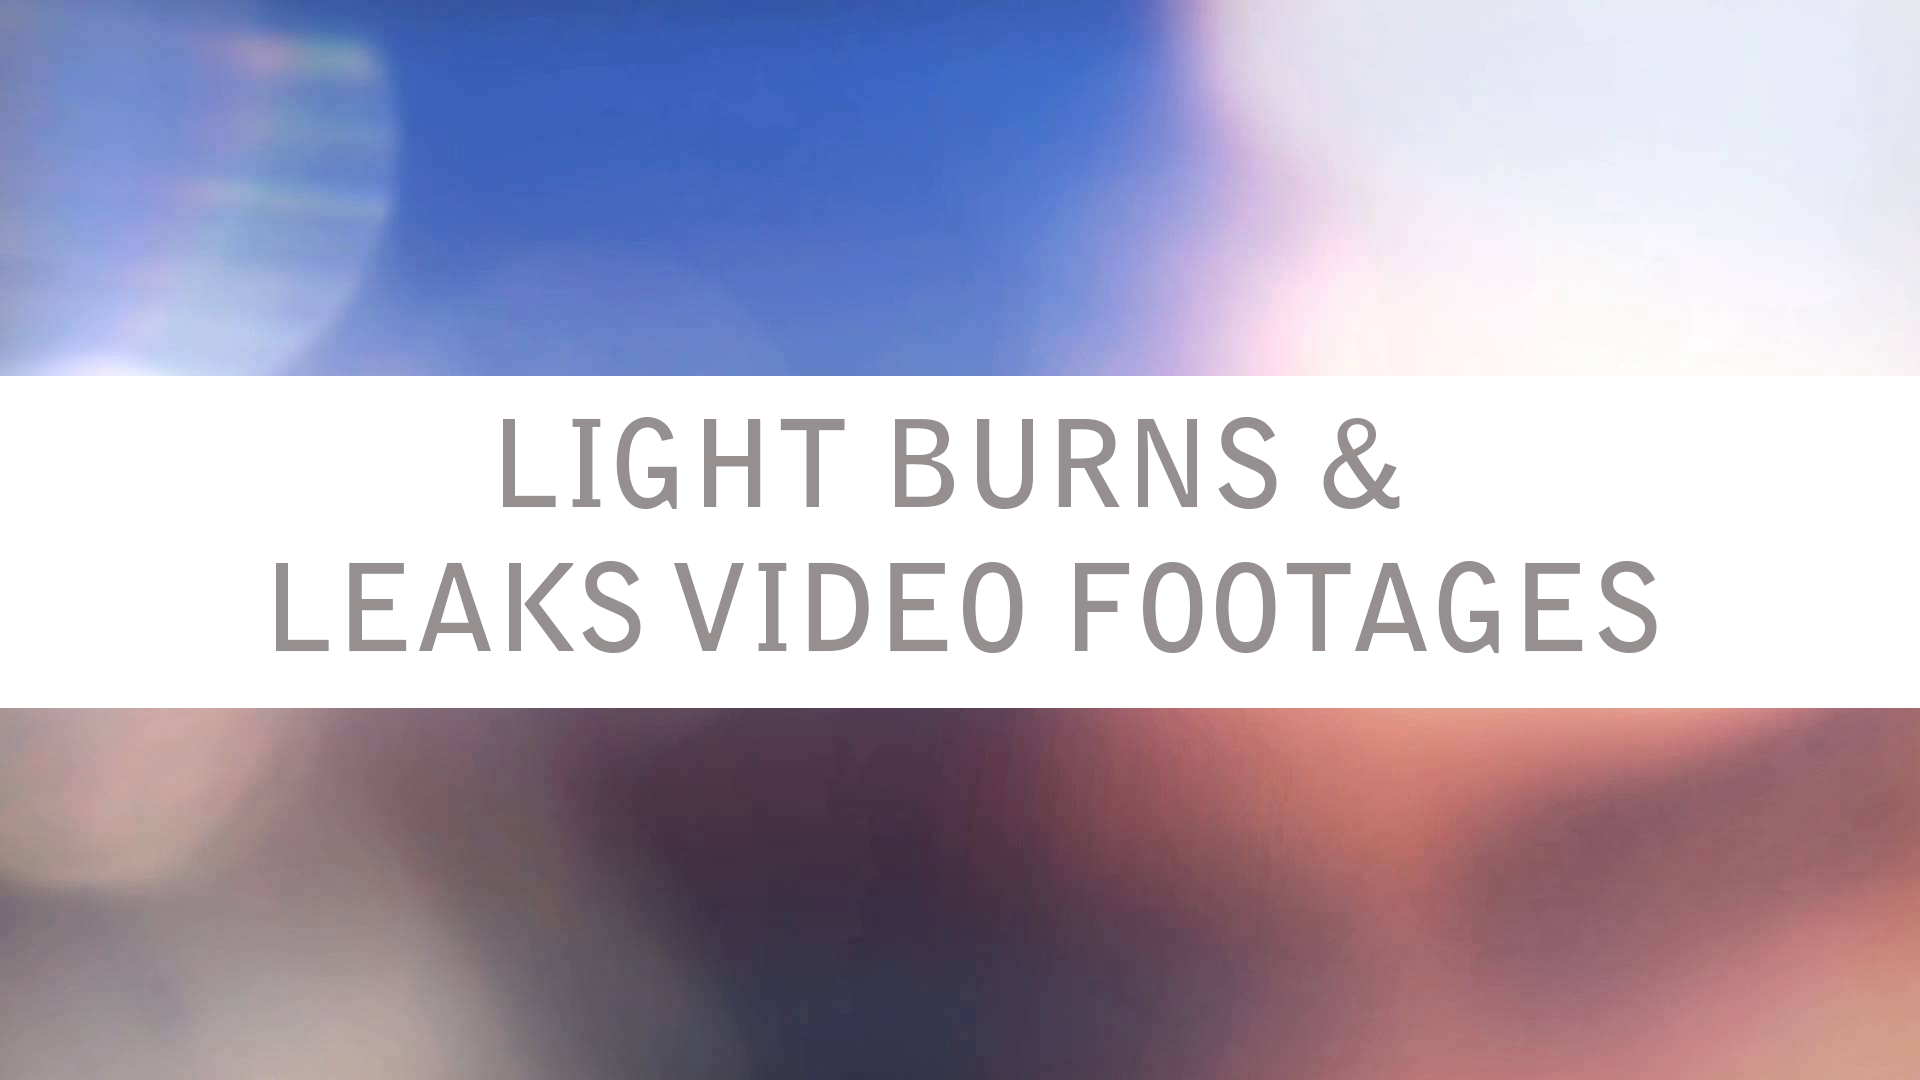 Light burns & leaks footages